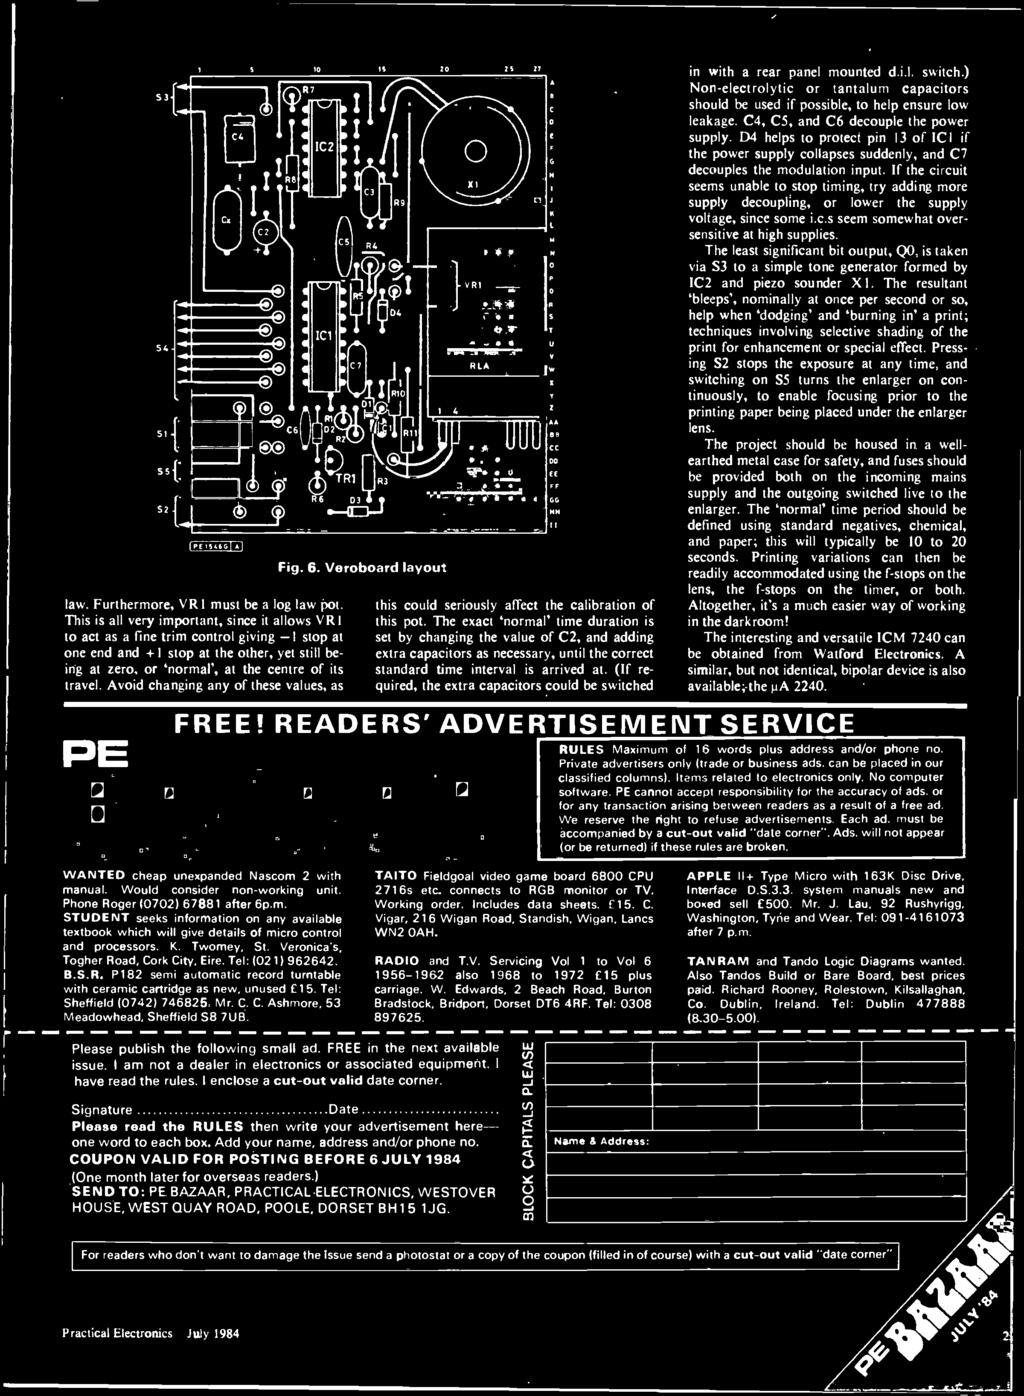 Electron Cs Isu Ige Practi Cal Sli 90p July 1984 Logic Analvbe Faze 3 Fuse Box Handle The Extra Capacitors Could He Switched Gc Nn In With A Rear Panel Mounted Dil